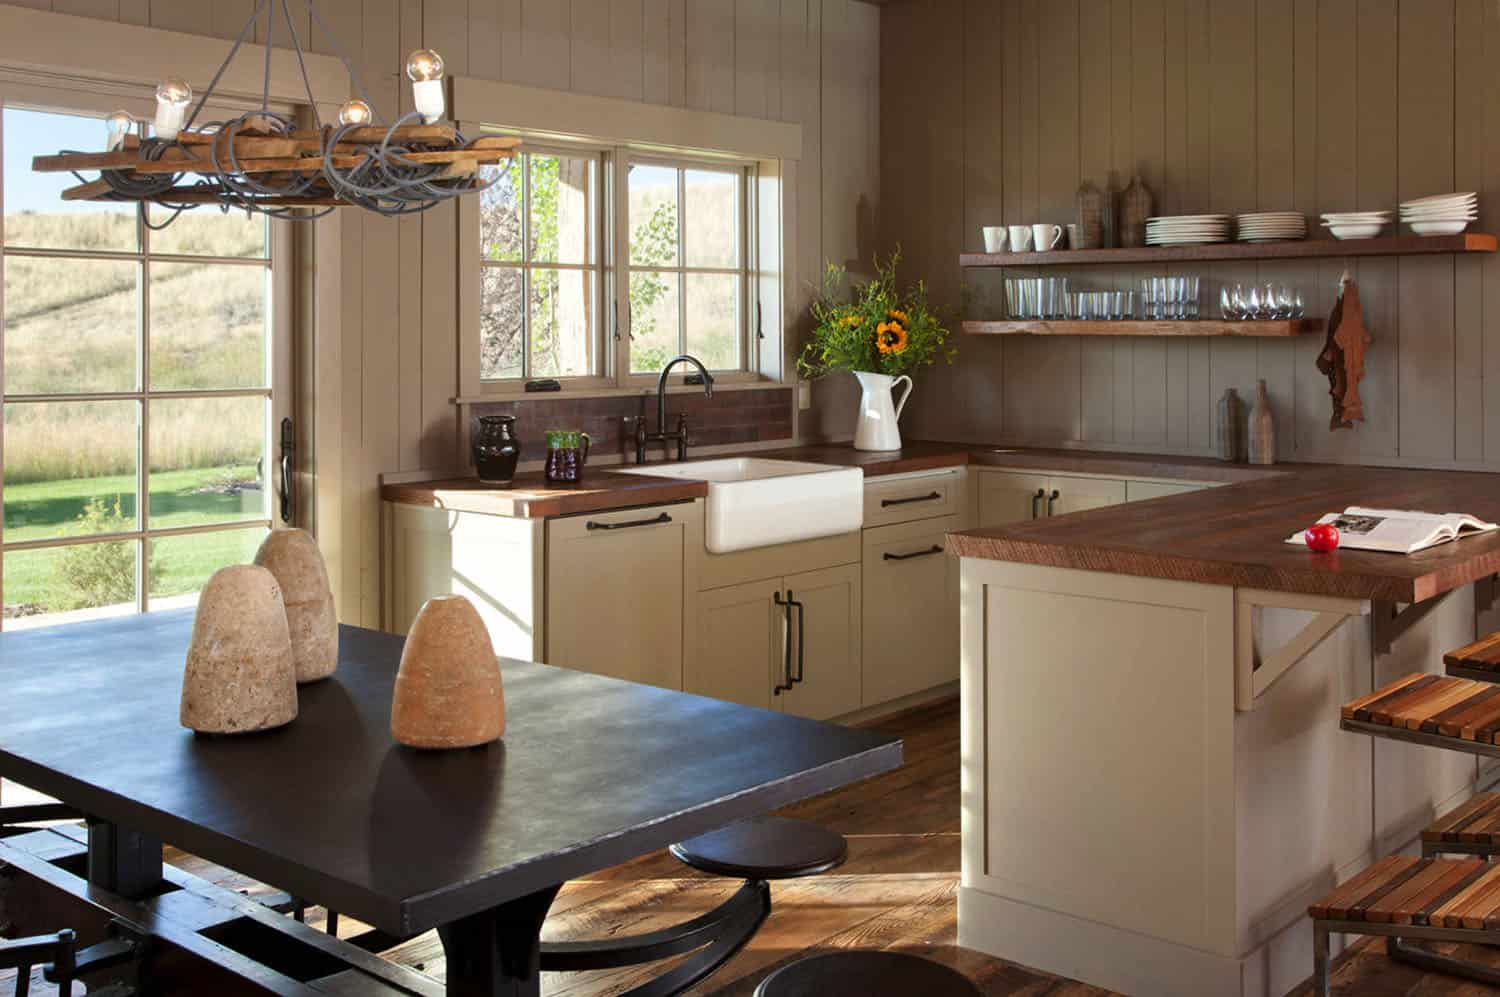 bunkhouse-transitional-kitchen